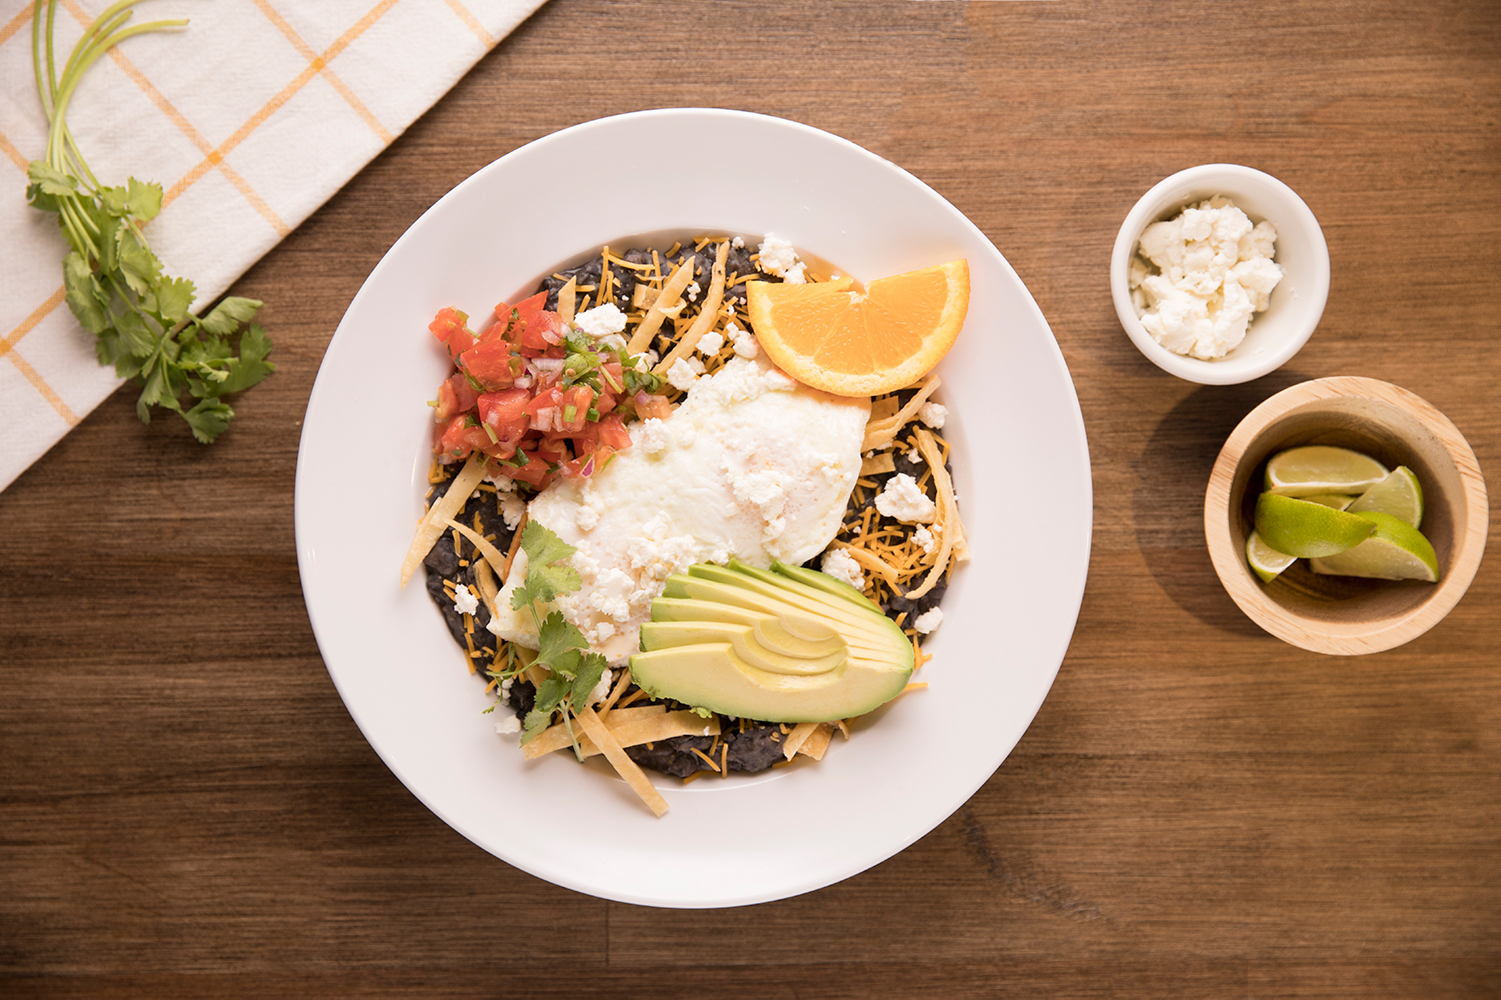 Huevos rancheros, black beans topped with eggs, cheese, salsa, and avocado